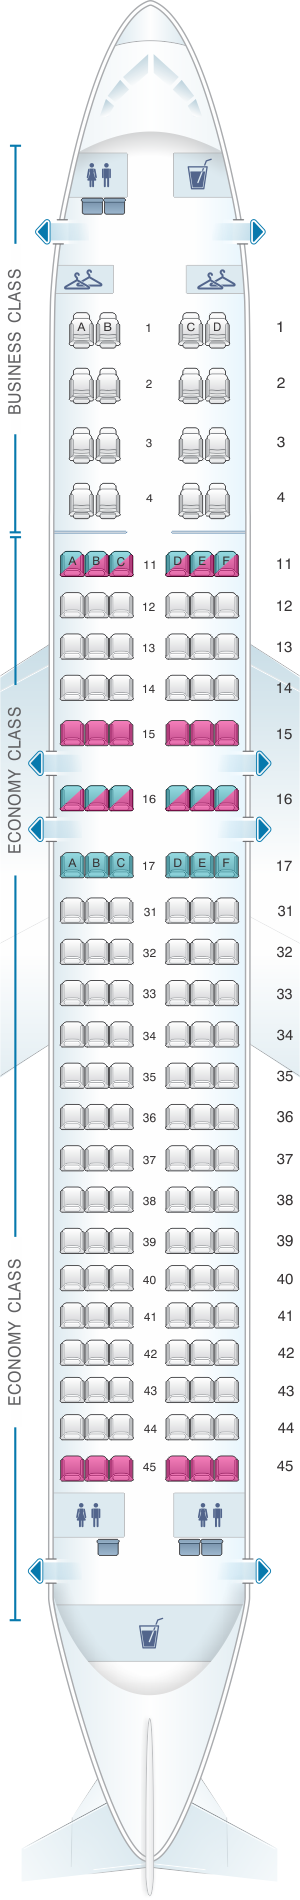 Seat map for Air Astana Airbus A320NEO